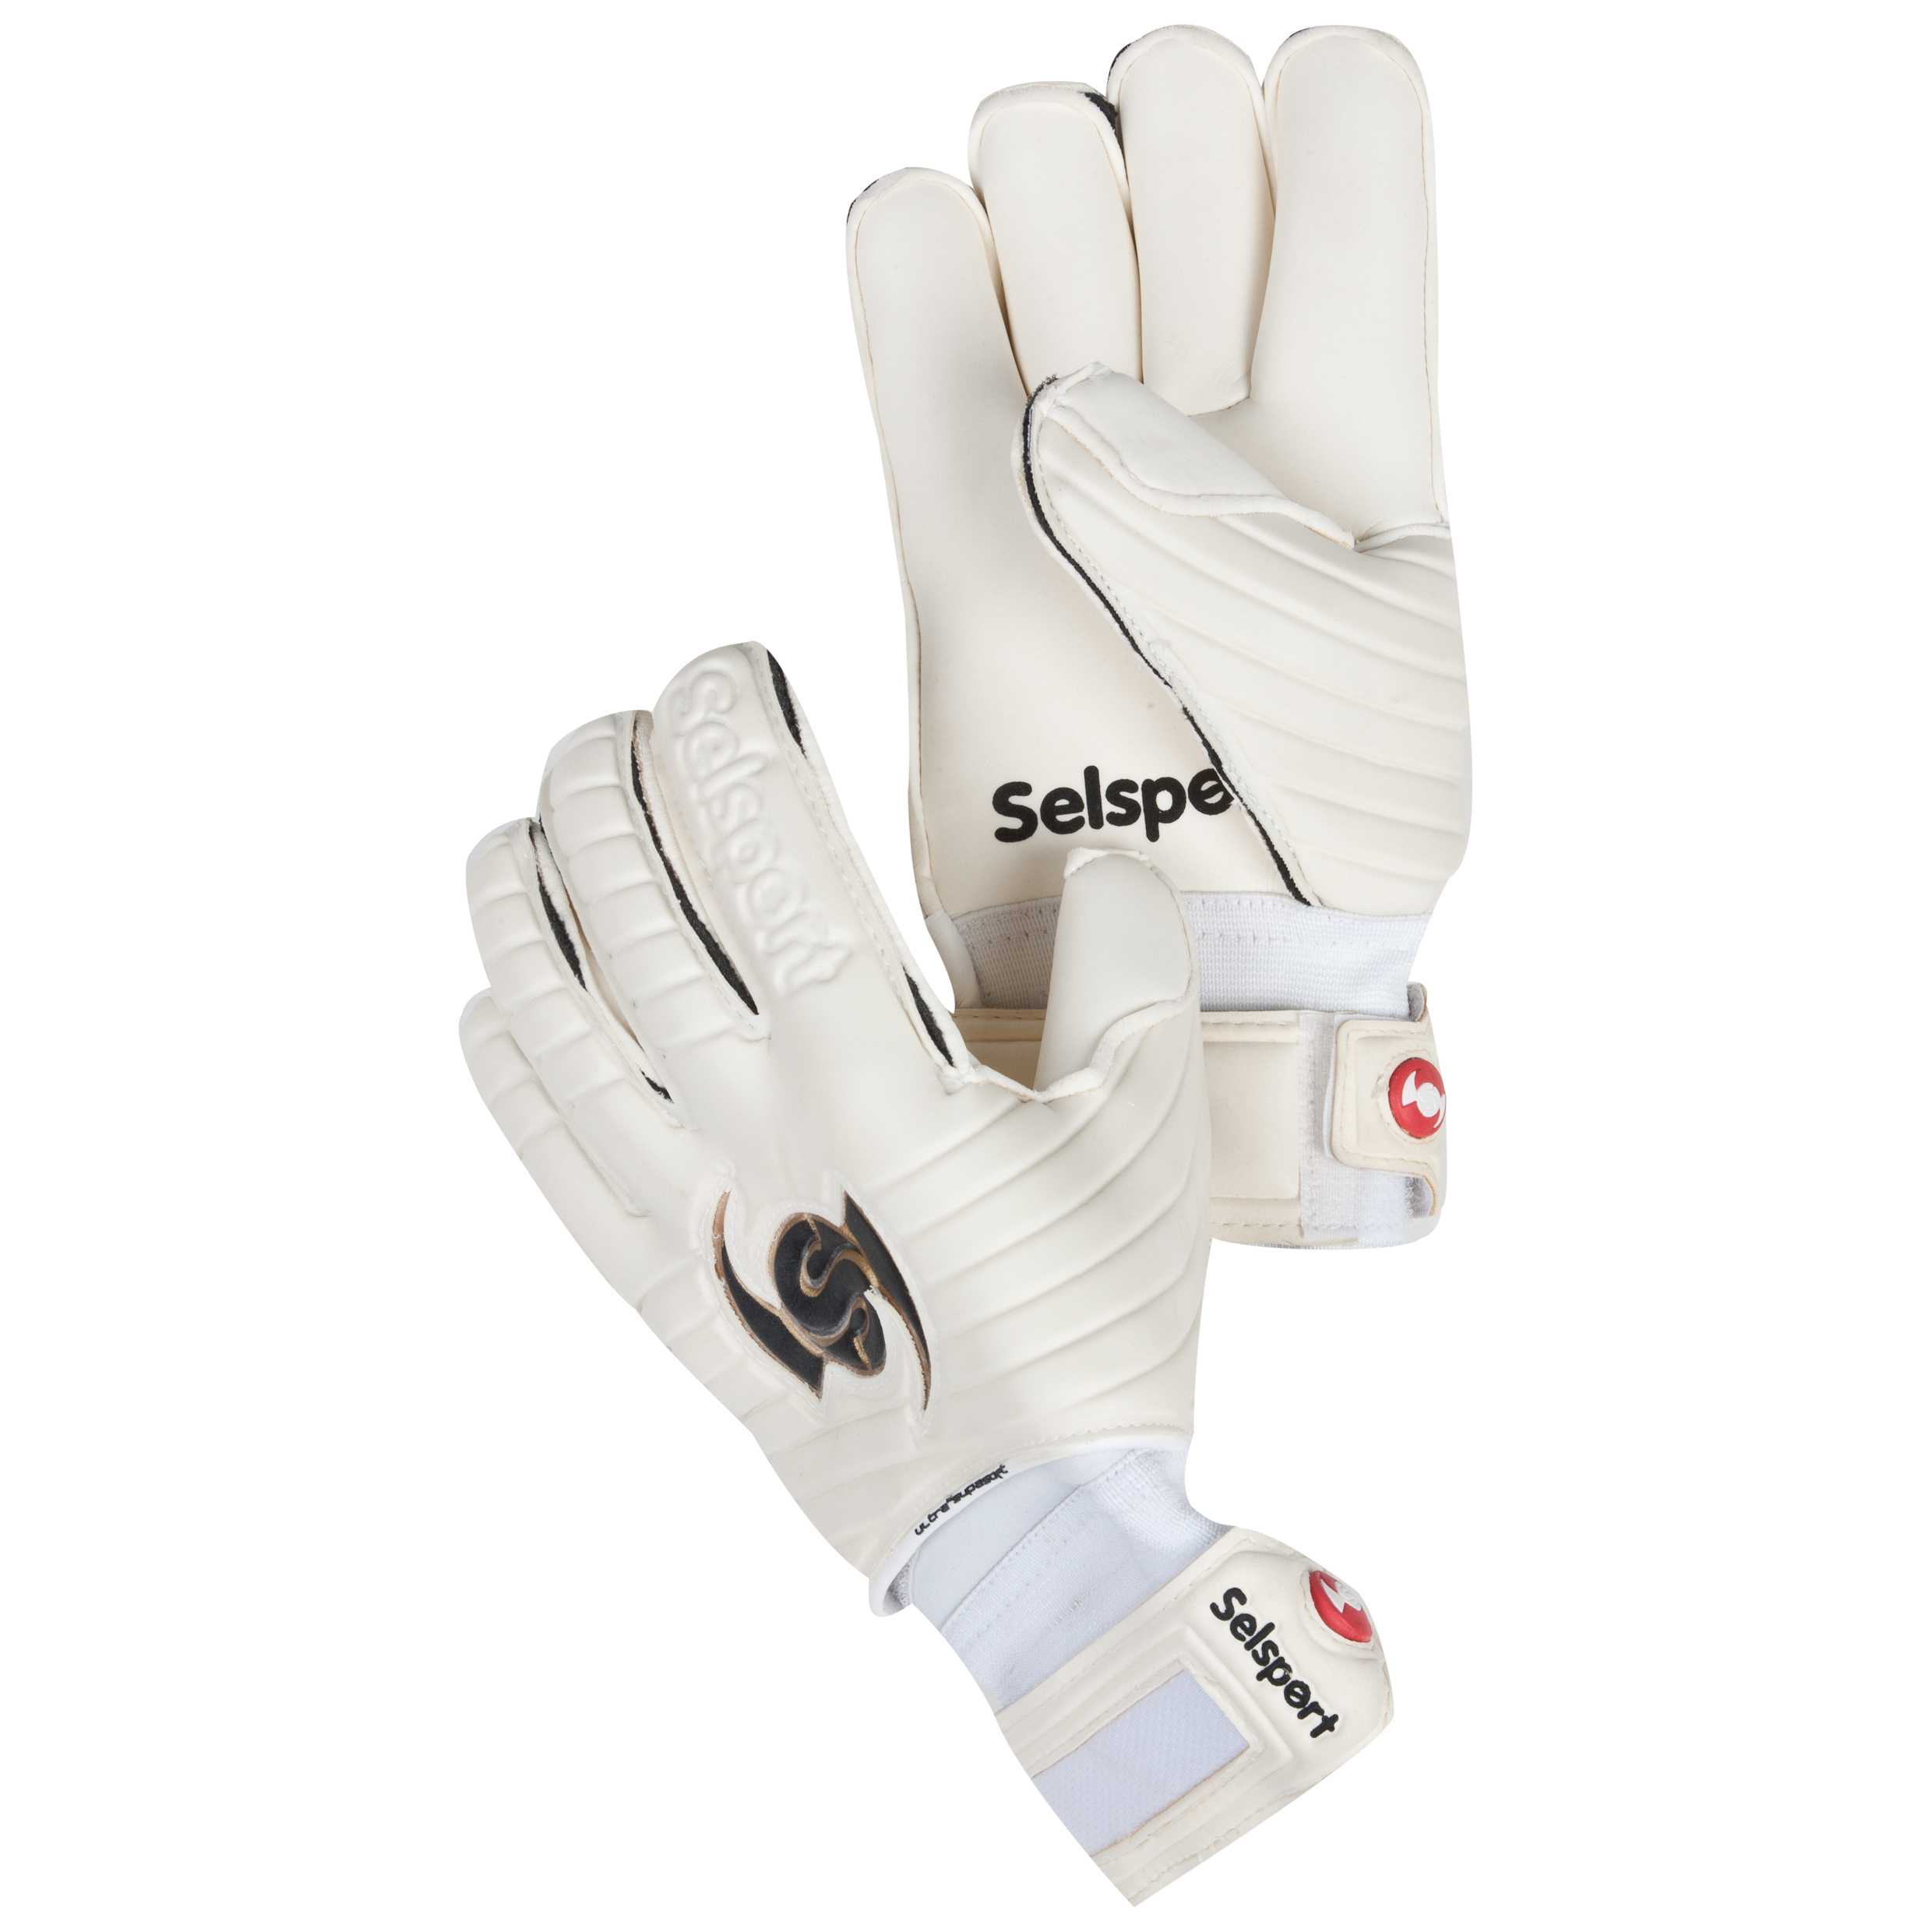 Selsport Wrappa Protect FP Goalkeeper Gloves - Kids - Black